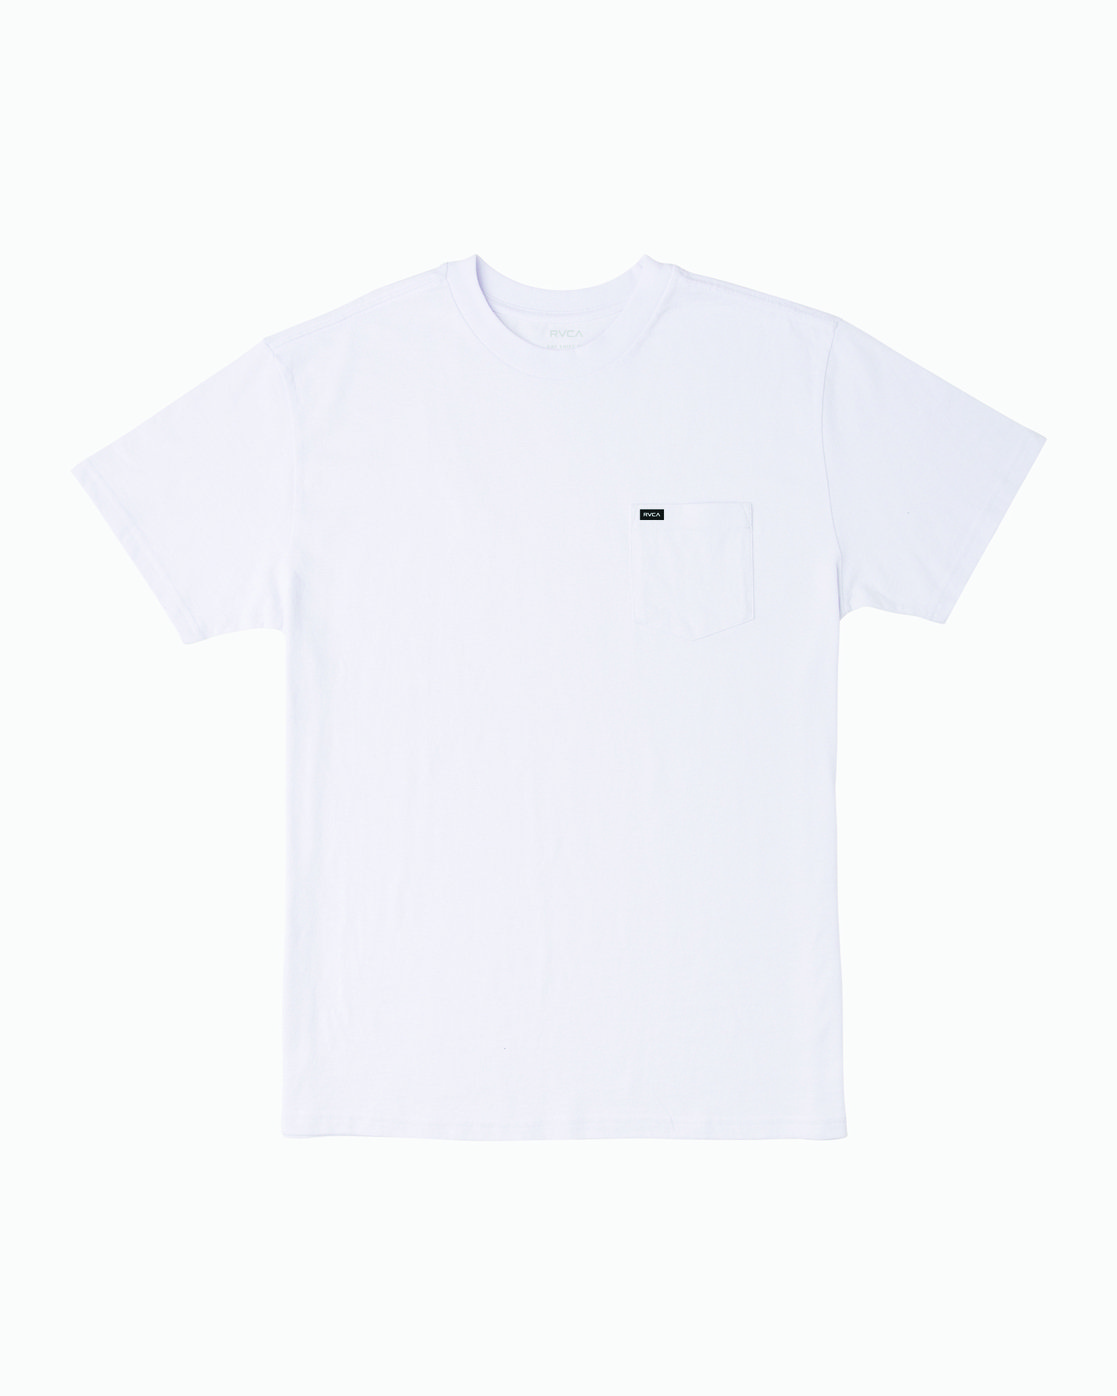 0 Dayshift Solid Label T-Shirt White M414VRSO RVCA